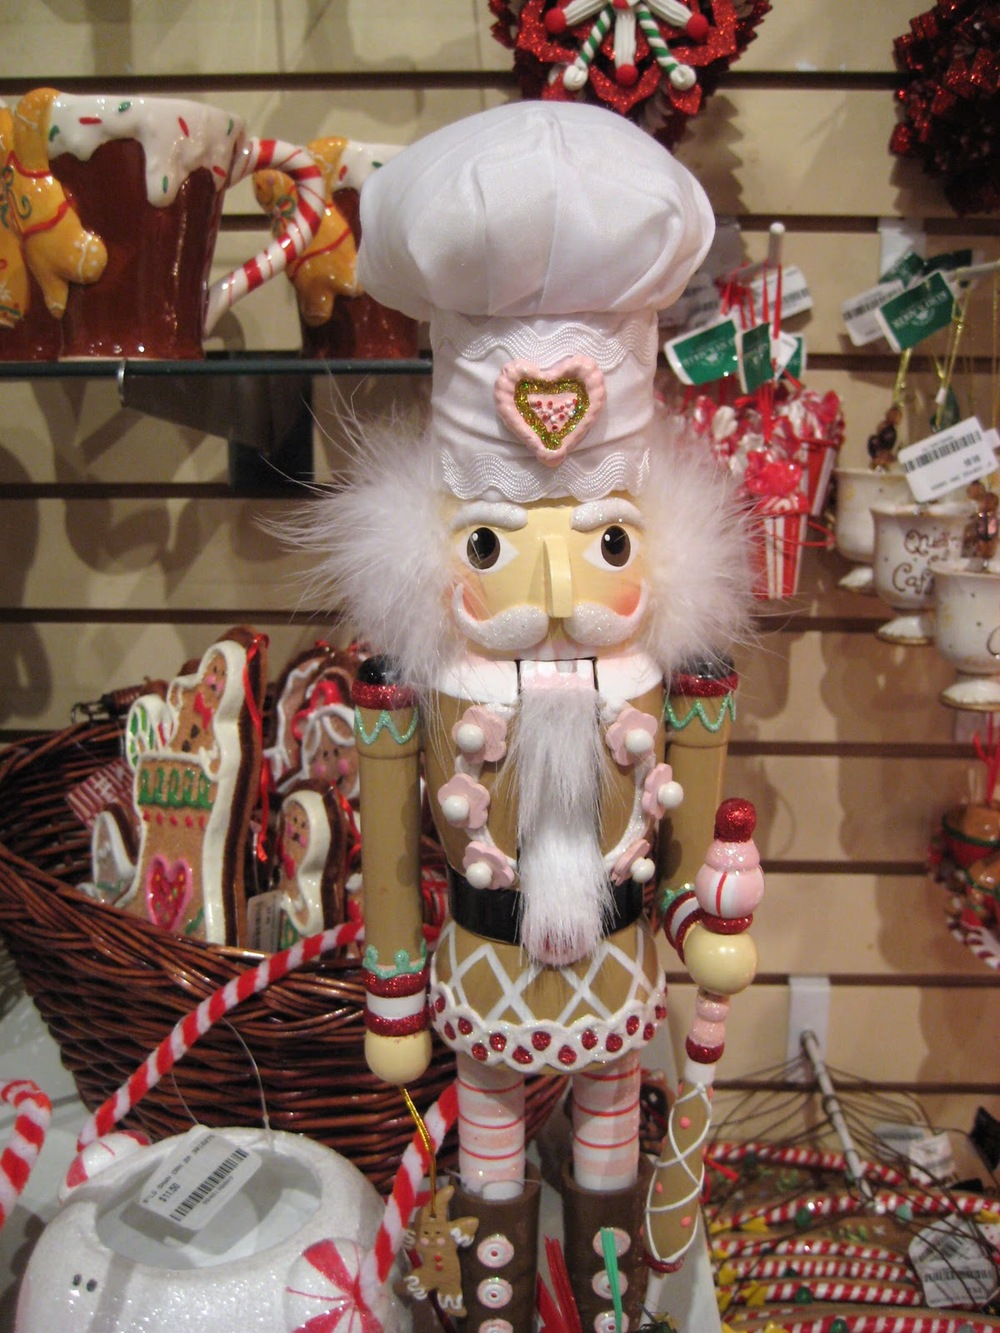 Check out this Pastry Chef nutcracker I found.